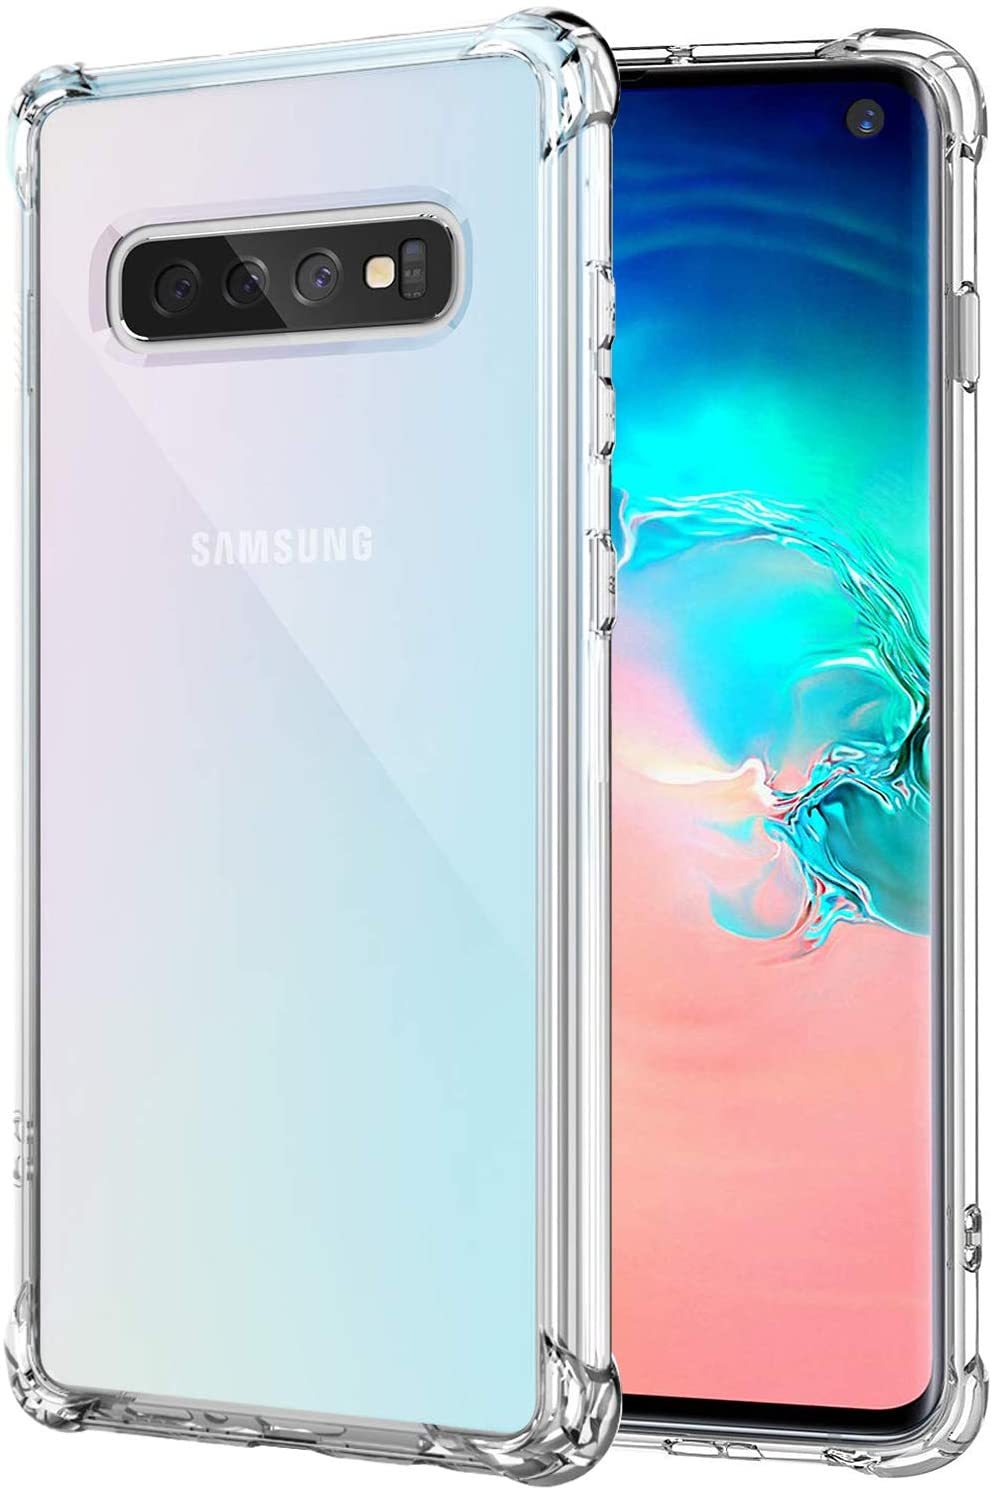 Galaxy S10 Case Ultra Max 44% OFFer OFF Crystal Shockproof Clear Protective Bumper